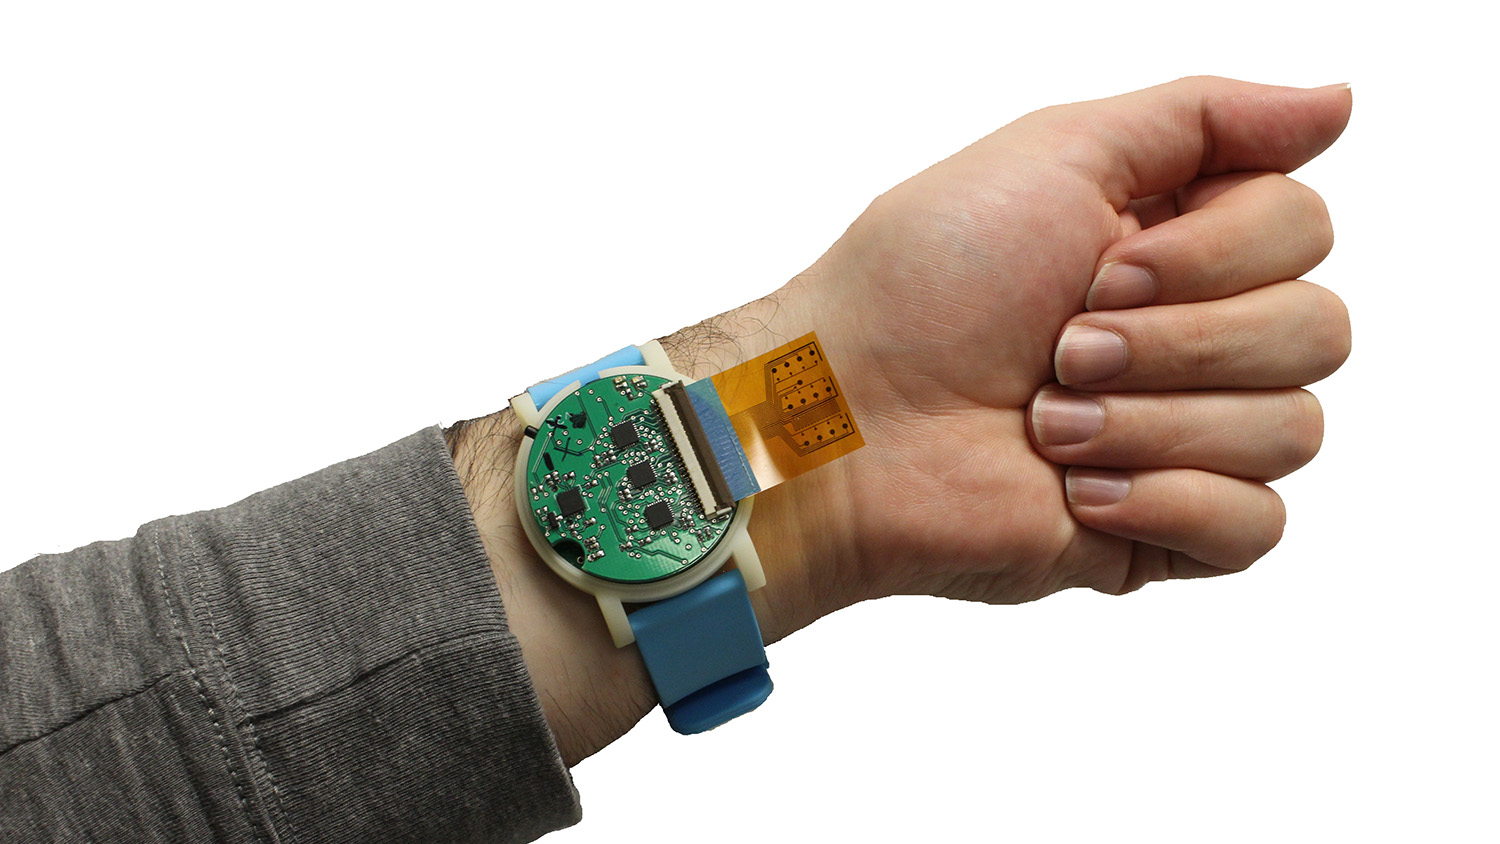 The metabolite monitoring device, shown here, is the size of a wristwatch. The sensor strip, which sticks out in this photo, can be tucked back, lying between the device and the user's skin. Photo credit: Murat Yokus, NC State University